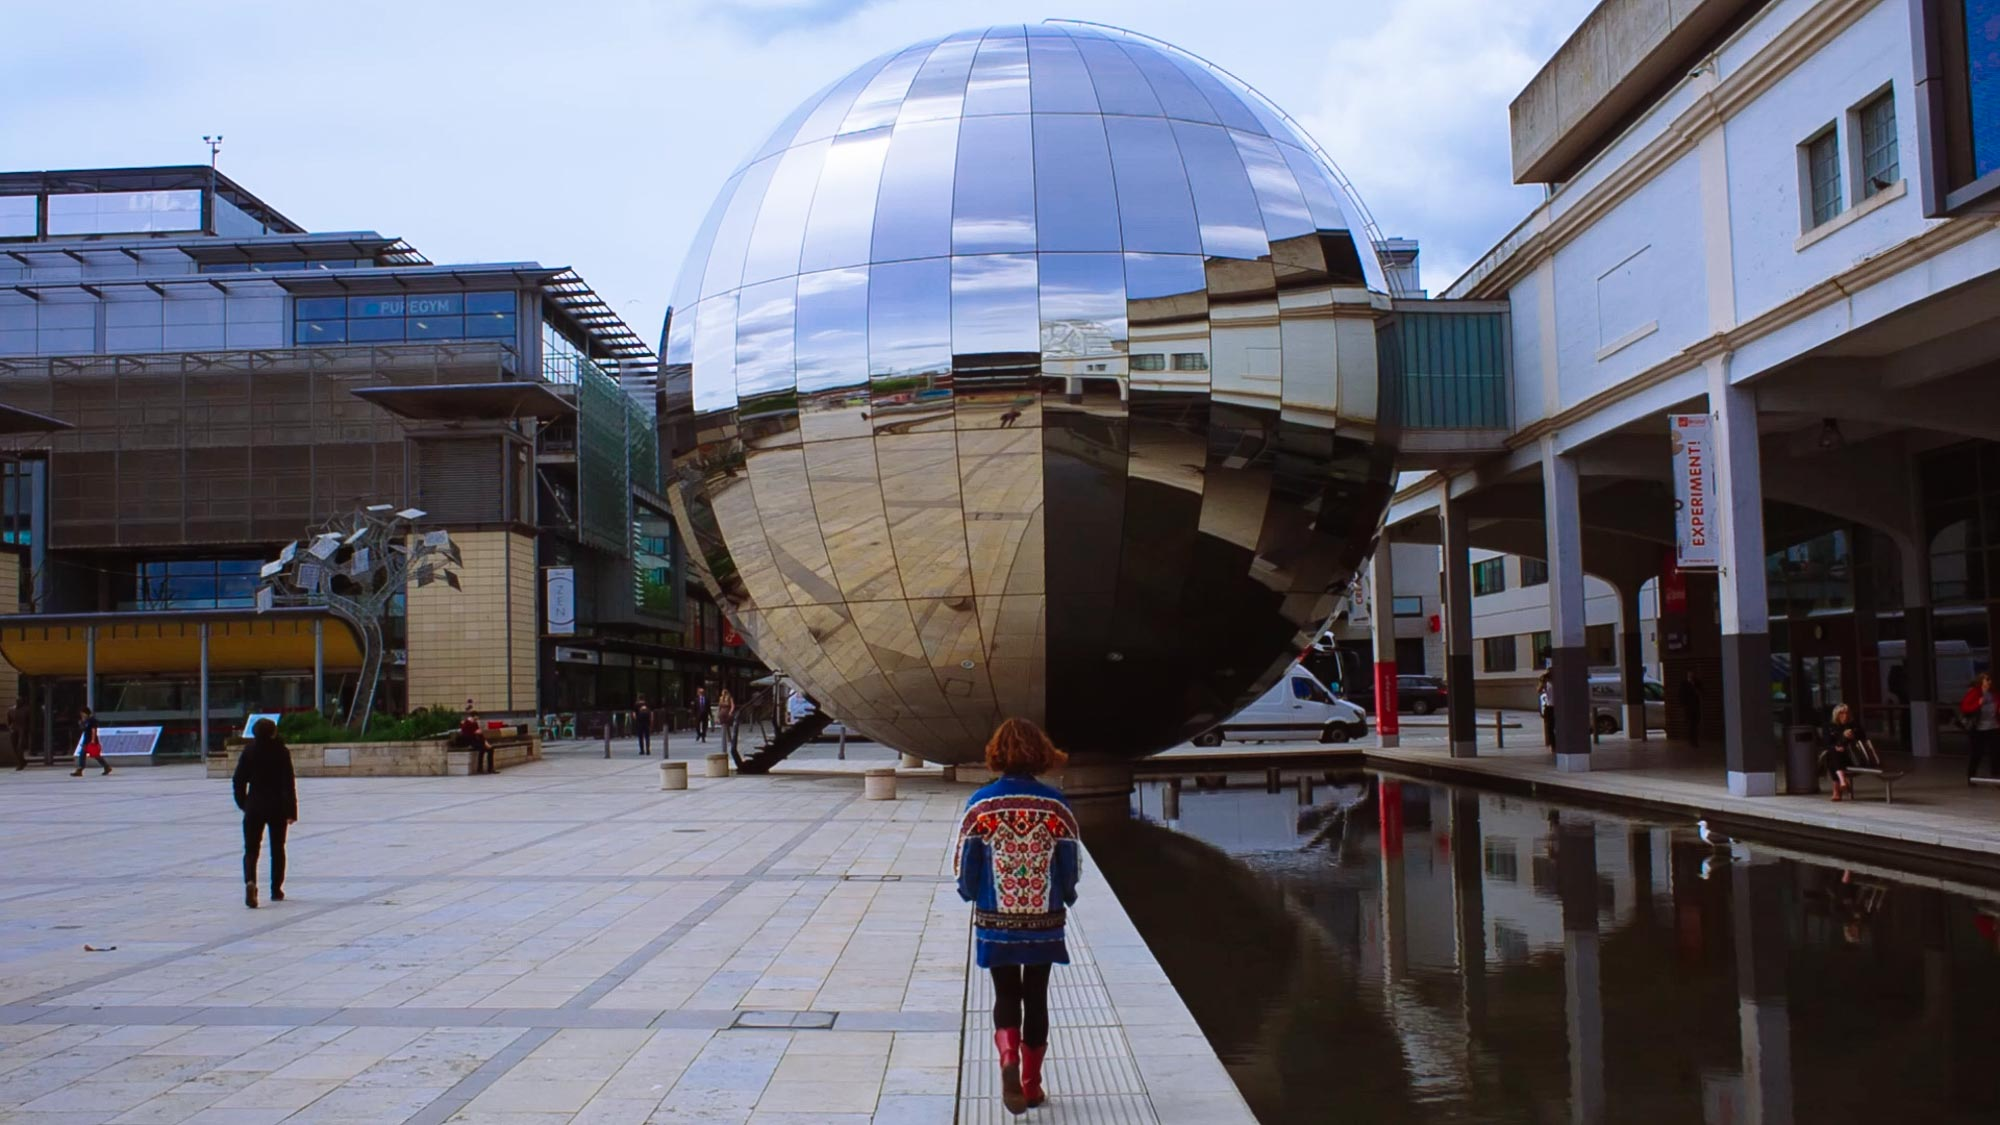 Things to do in Bristol - At Bristol Science Centre